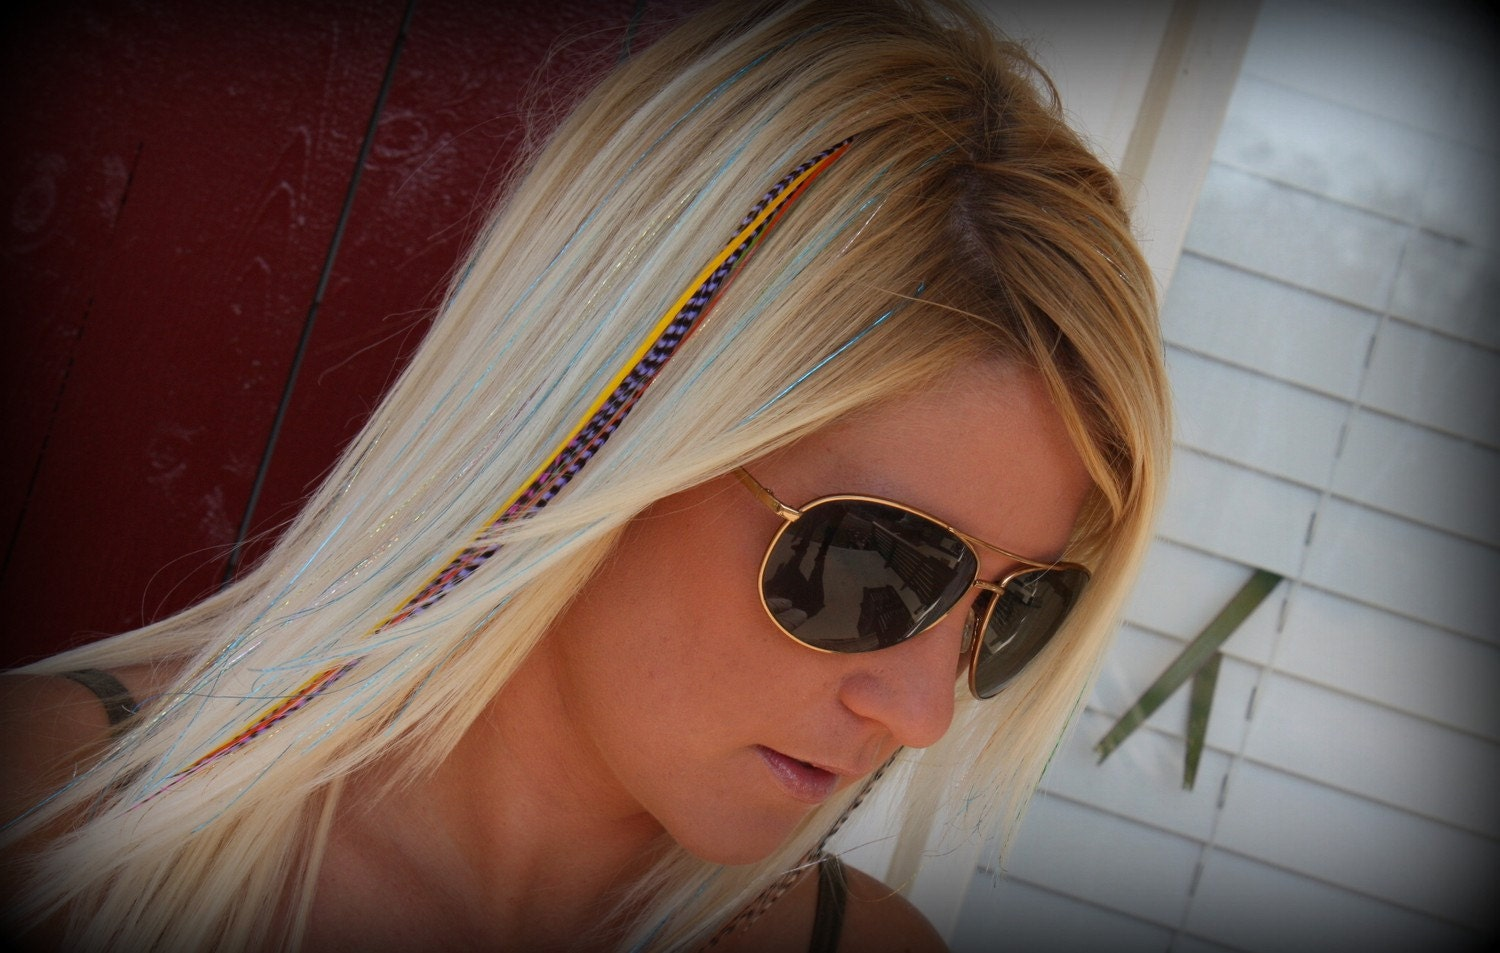 Indie Hairstyle Hairstyle Gallery « Search Results « LONG HAIRSTYLES